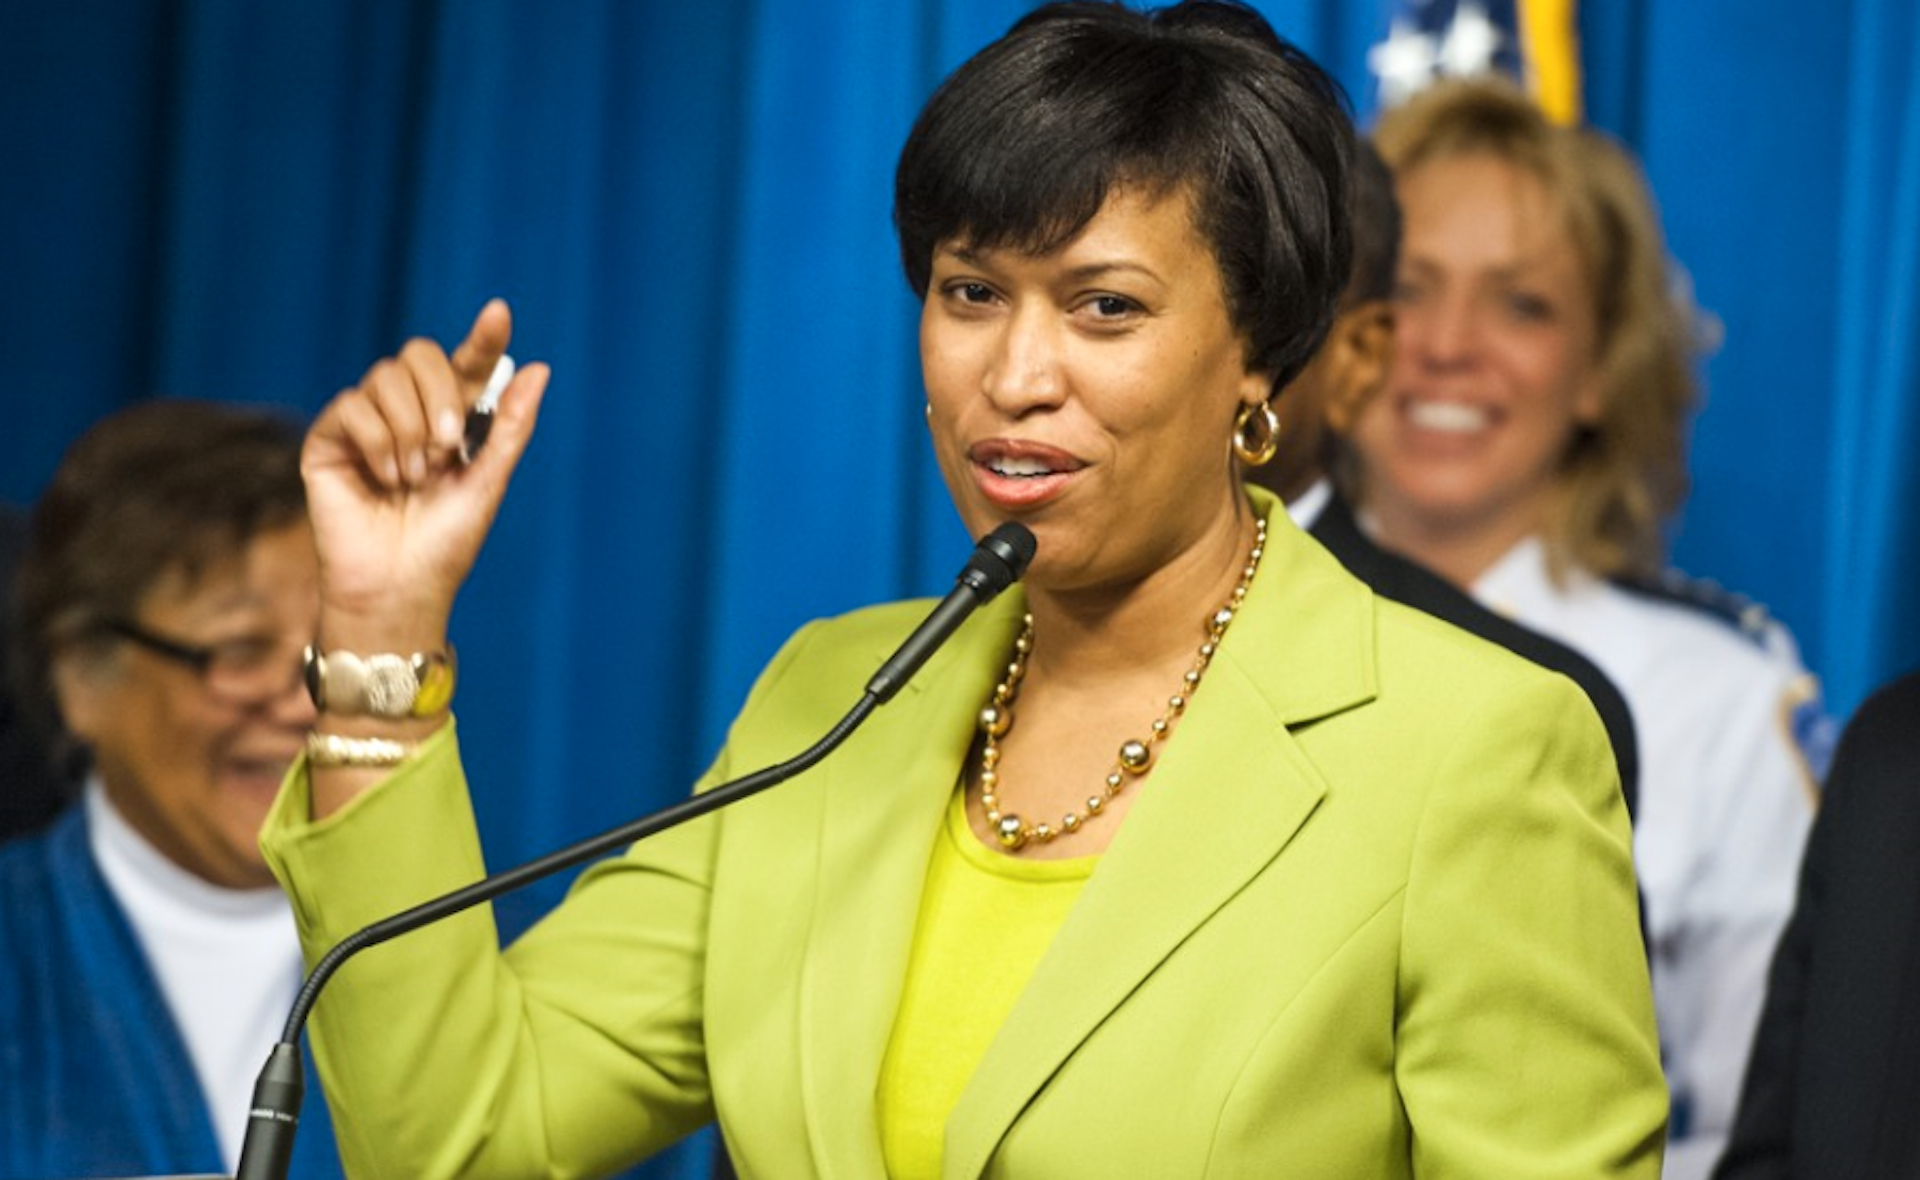 Lawmakers encourage Bowser to reconsider declaring pot legal in D.C.